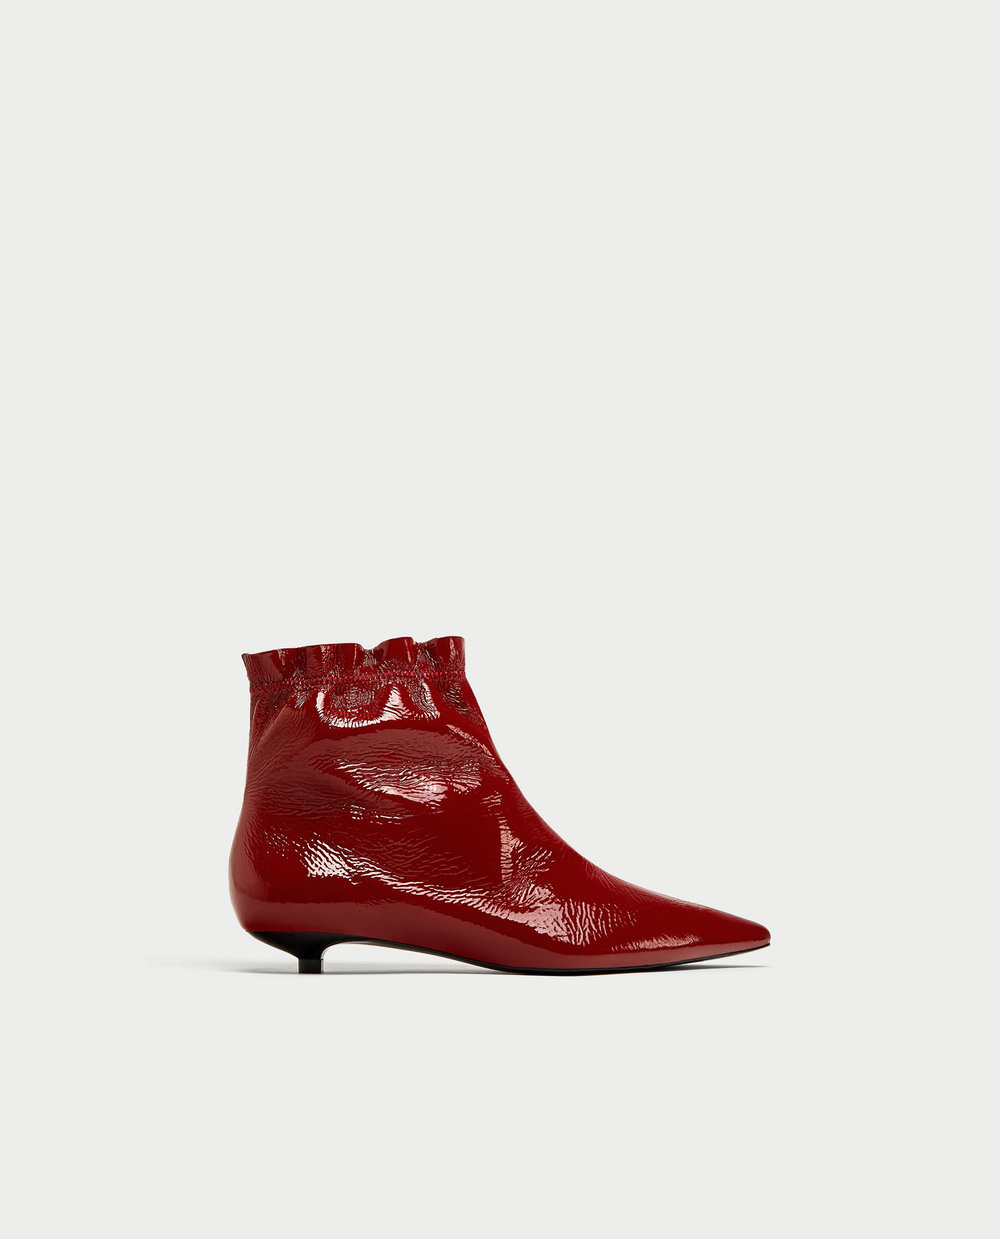 FLAT PATENT FINISH LEATHER ANKLE BOOTS. Several colors and similar styles available. Zara. $89.